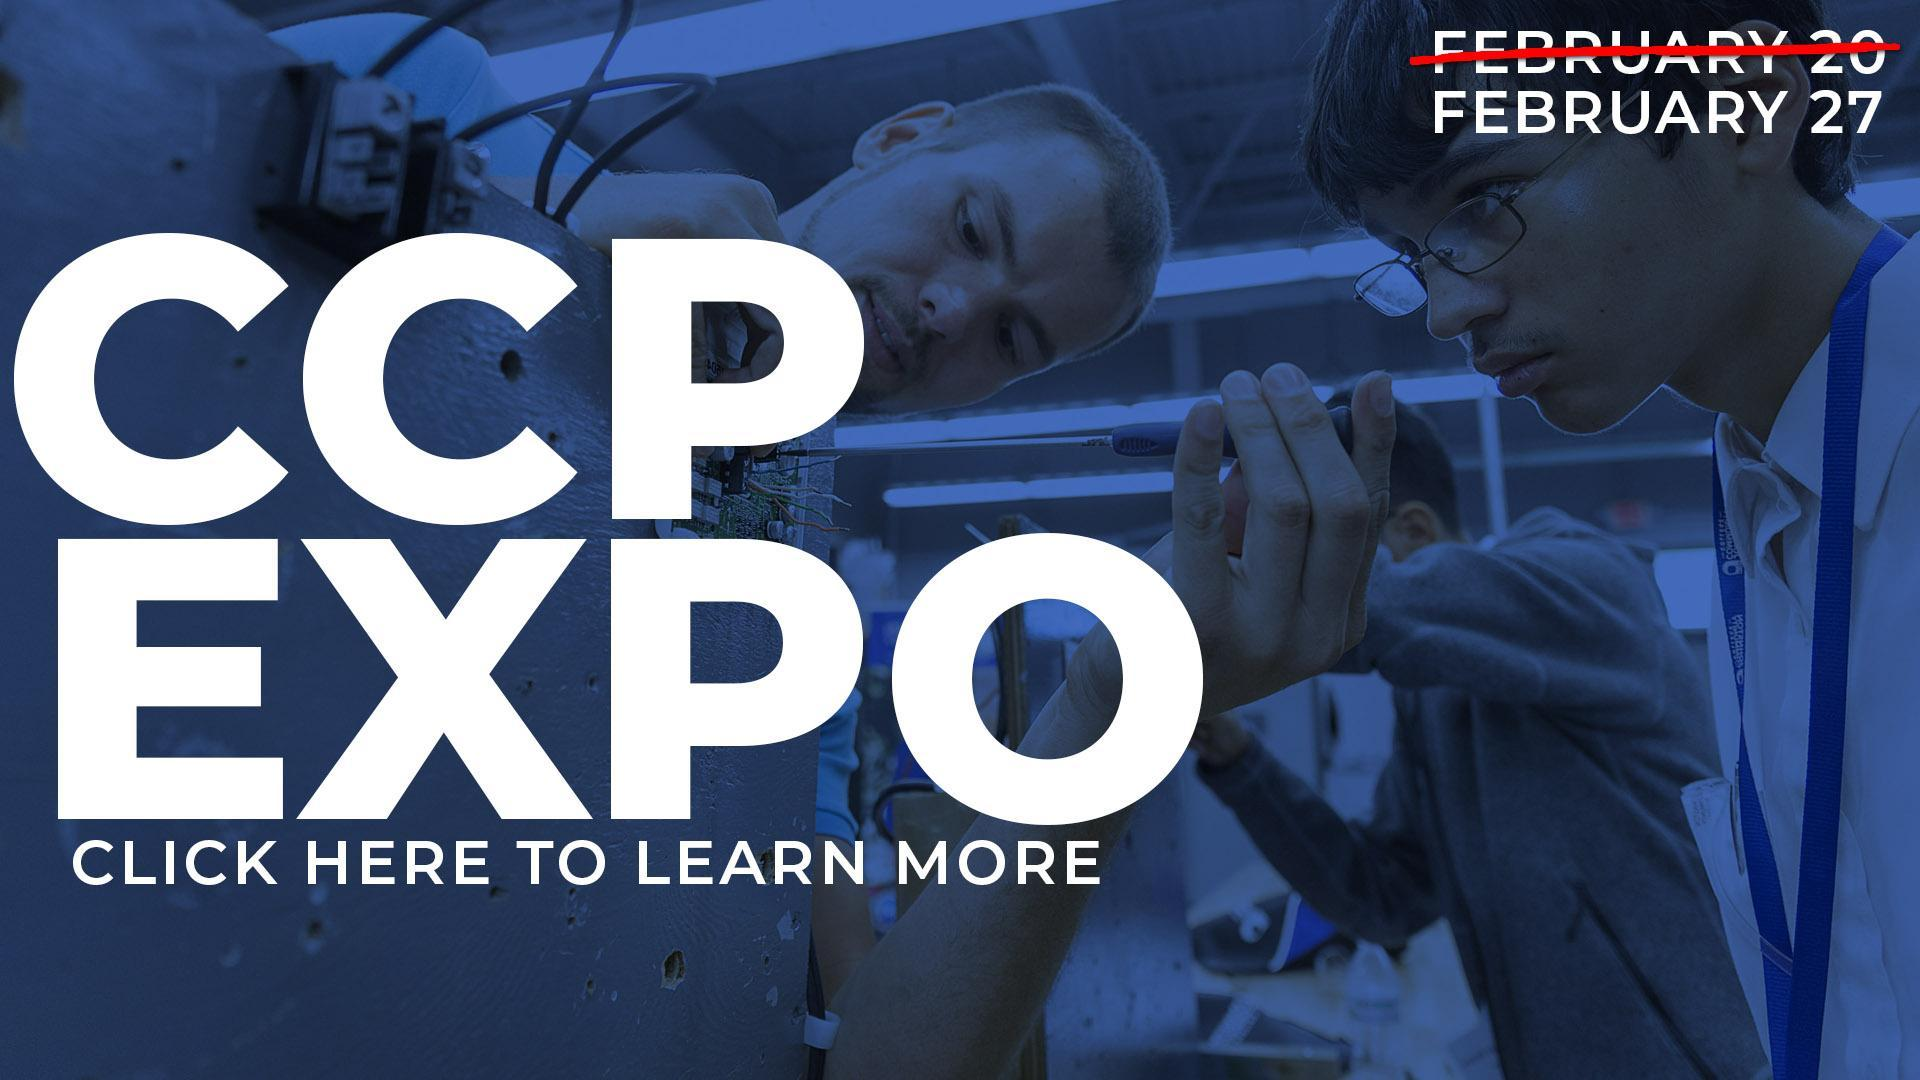 CCP Expo. February 27th, 2020. Click here to learn more.